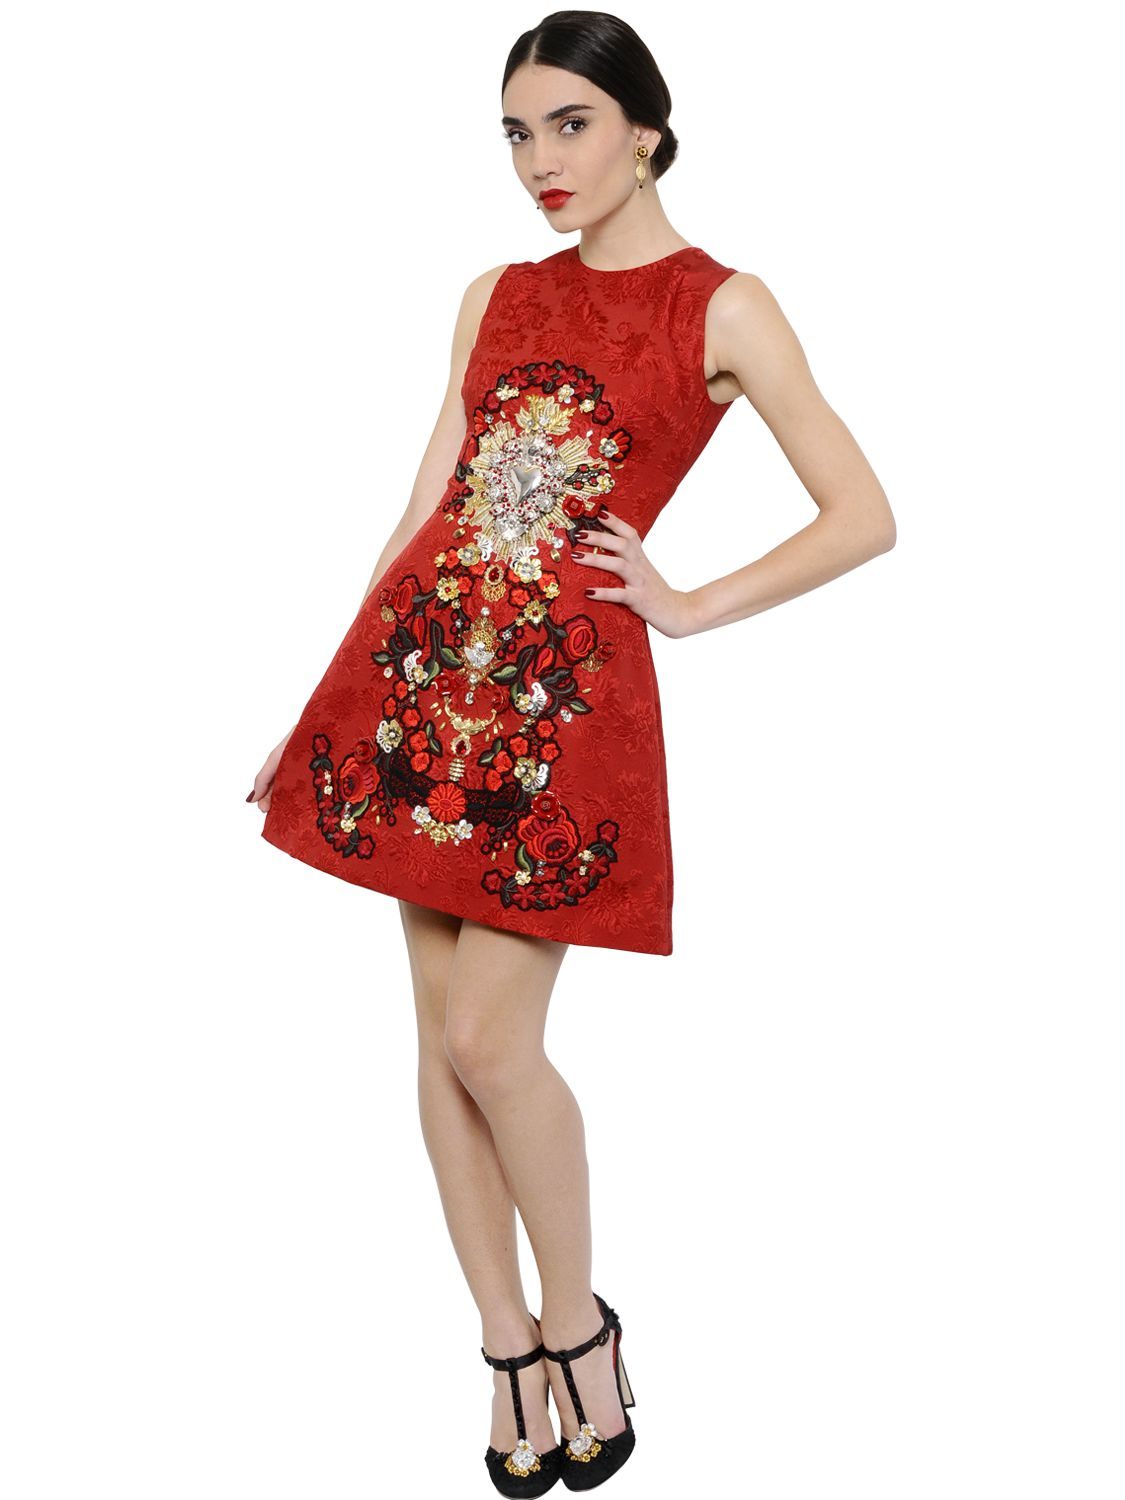 36ab0f81 Dolce & Gabbana Sacred Heart Embellished Brocade Dress in Red - Lyst